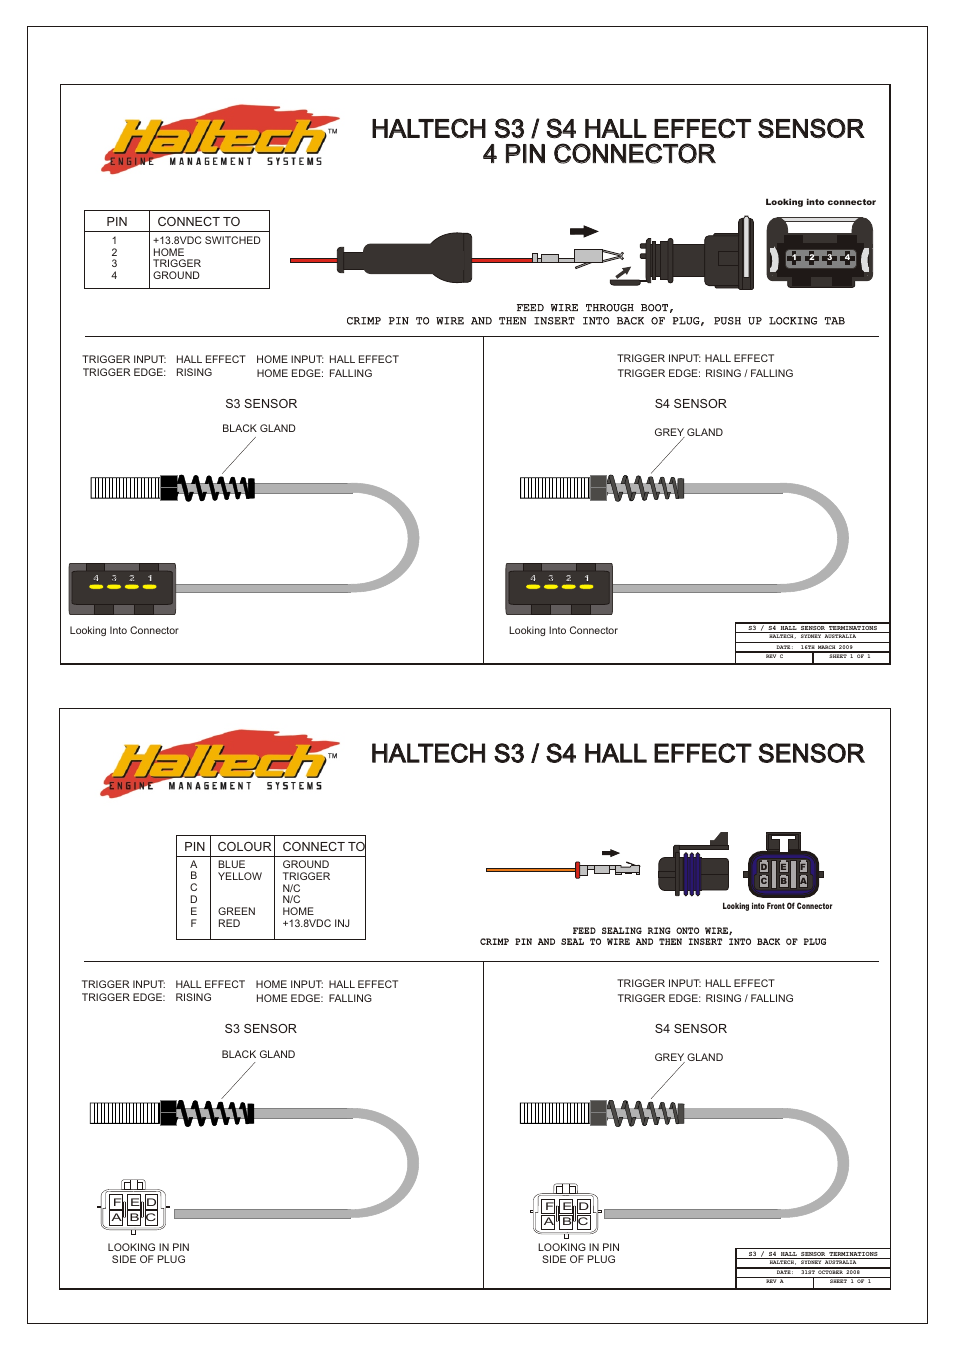 Gmc Savana Wiring Diagrams Engine Schematics And Wiring Diagrams